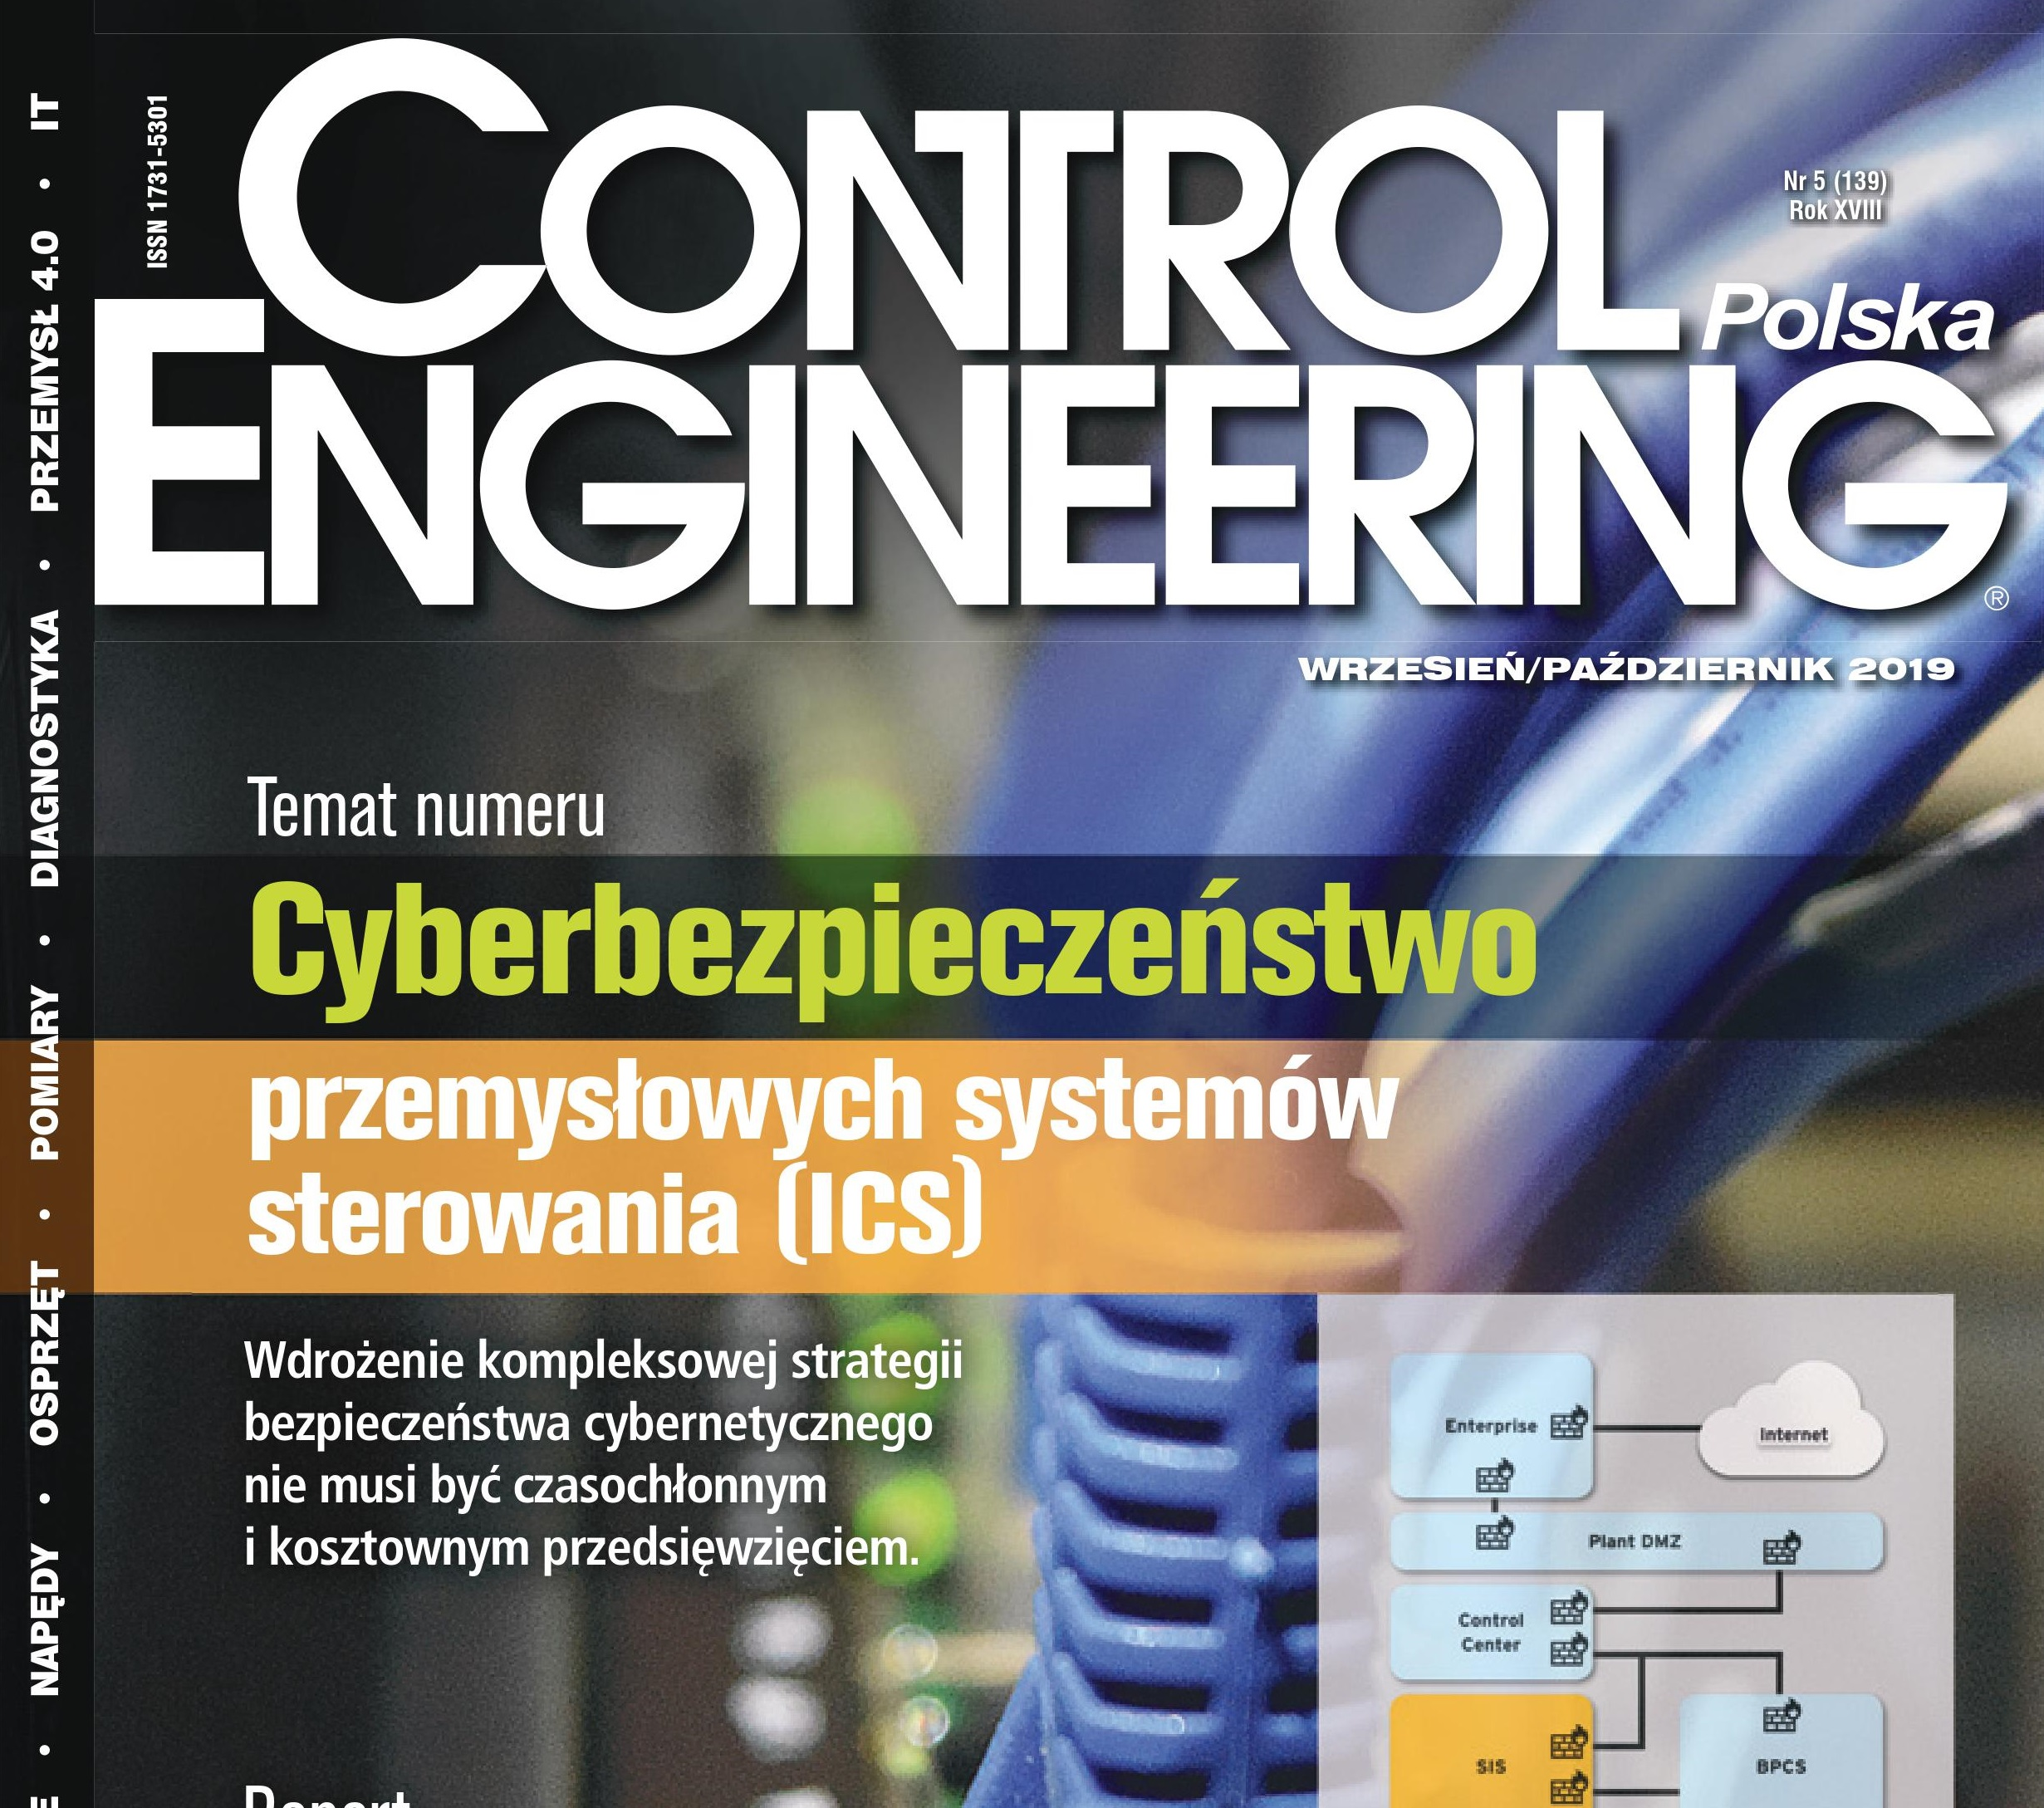 Read about us in the latest issue of Control Engineering (IN POLISH)